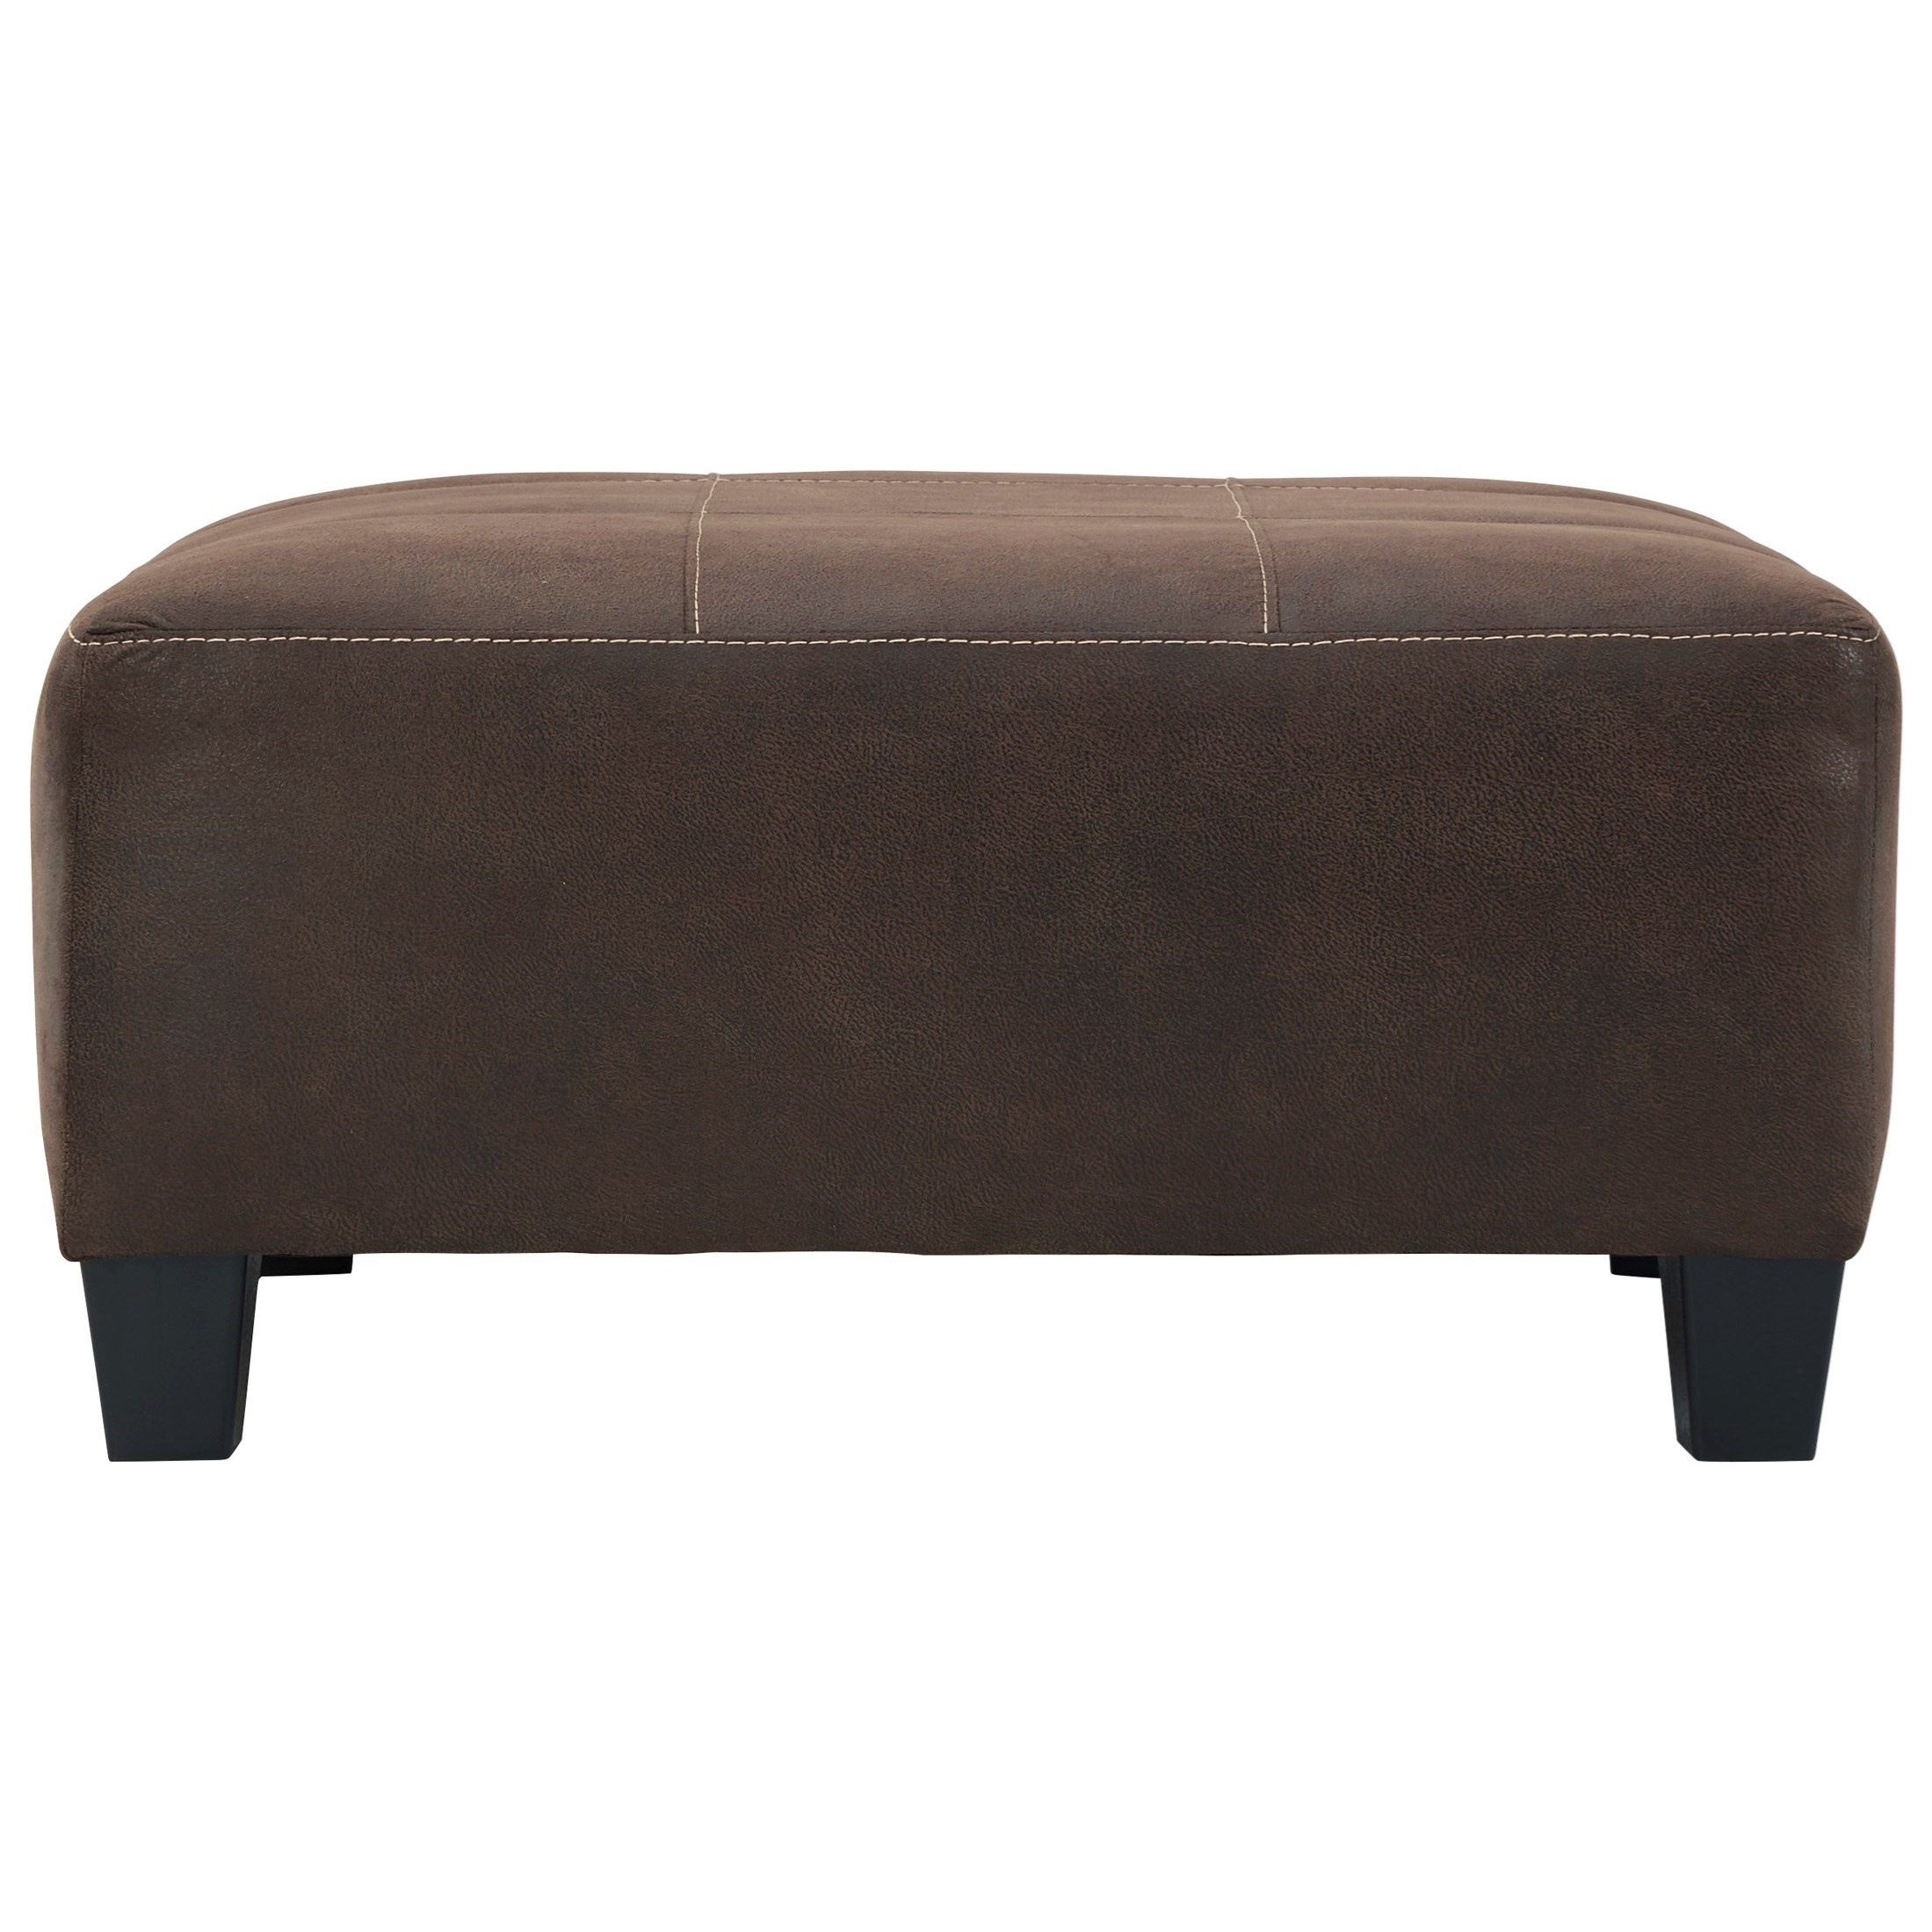 Navi Oversized Accent Ottoman by Signature Design by Ashley at Furniture Superstore - Rochester, MN